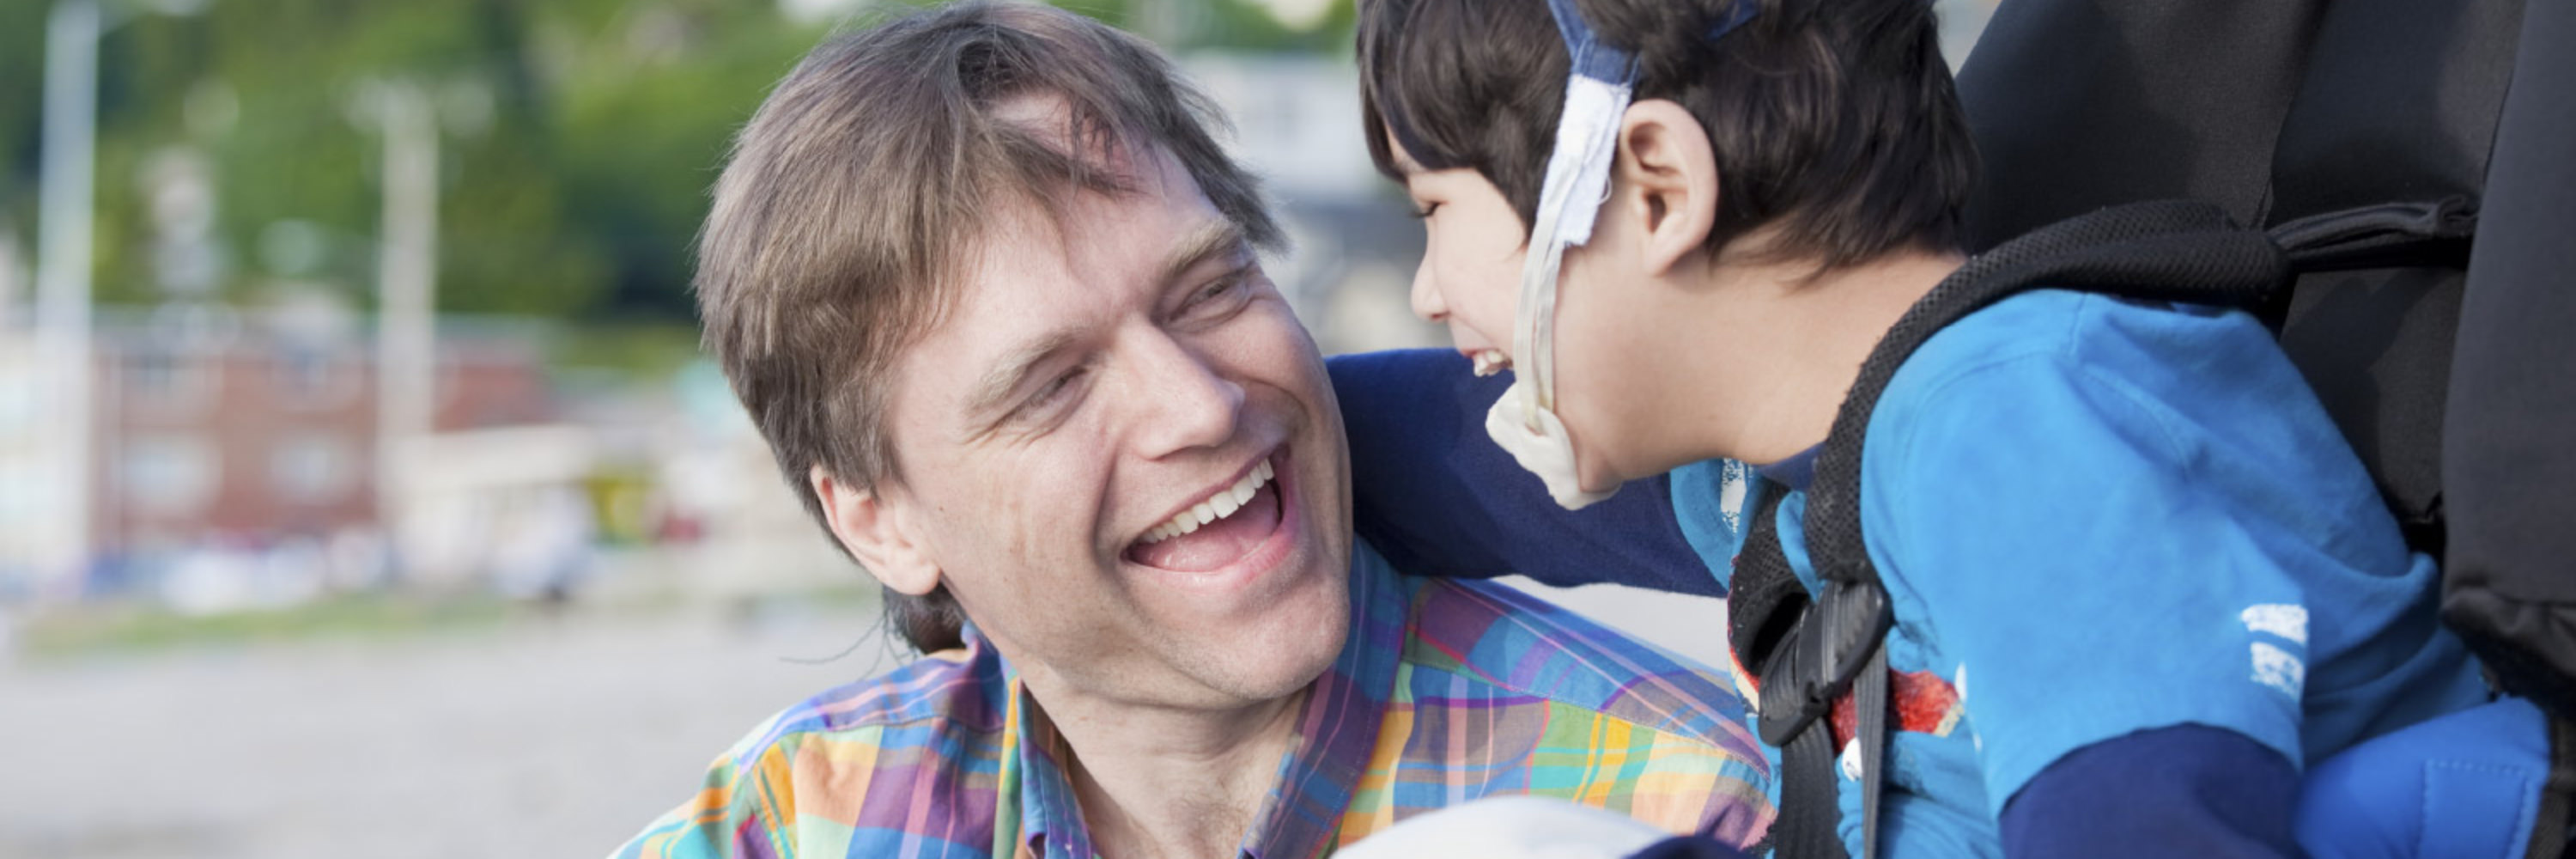 Adoptive father smiling with disabled son